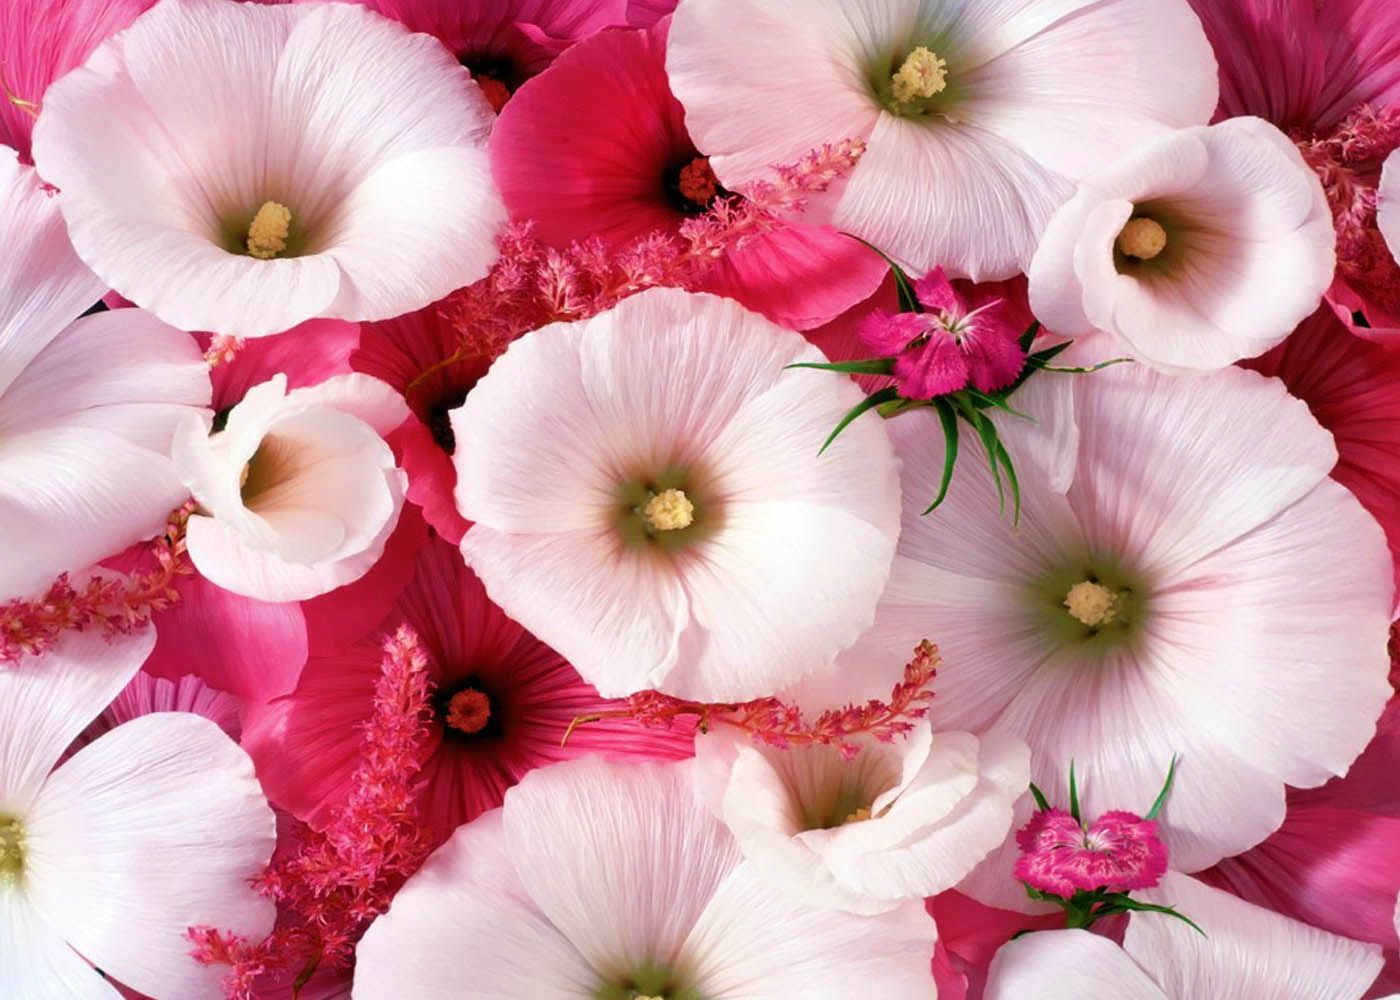 Images of beautiful flower wallpapers